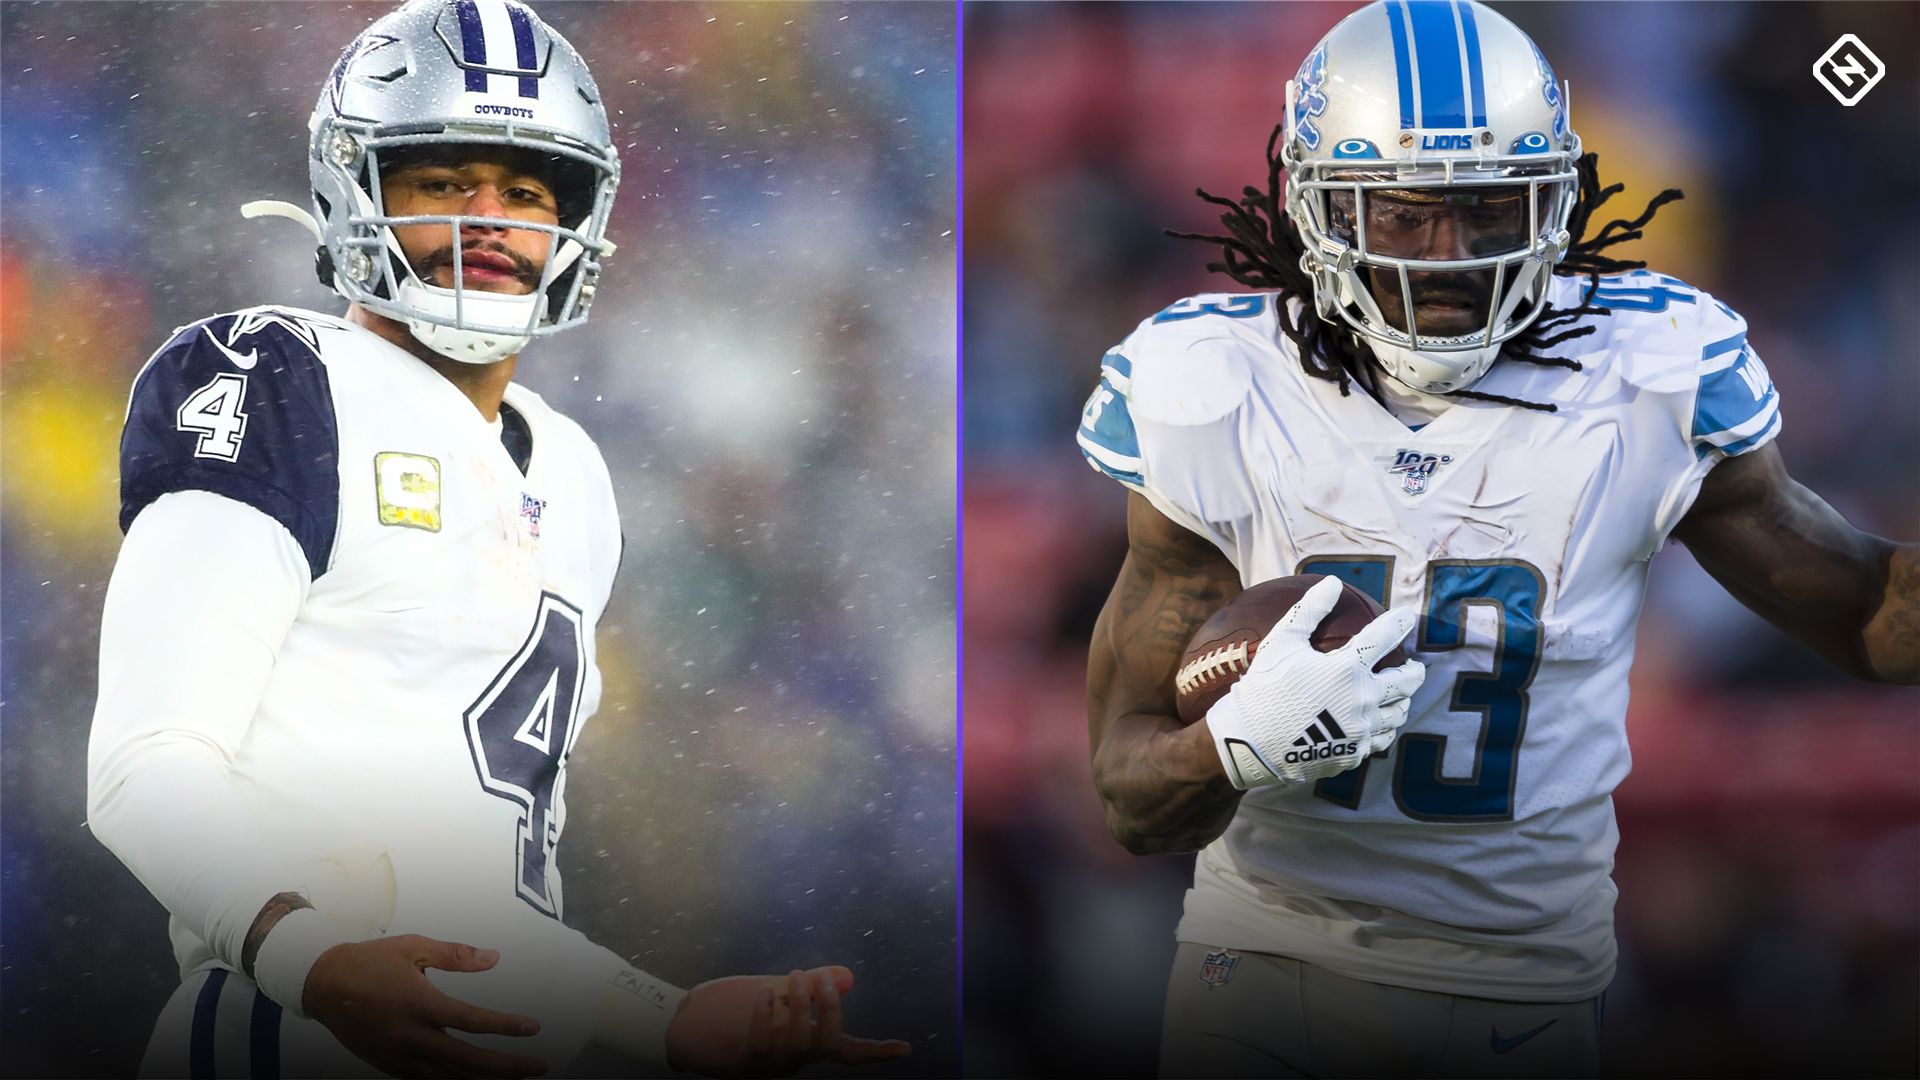 Who to start and sit in fantasy football for NFL Thanksgiving games